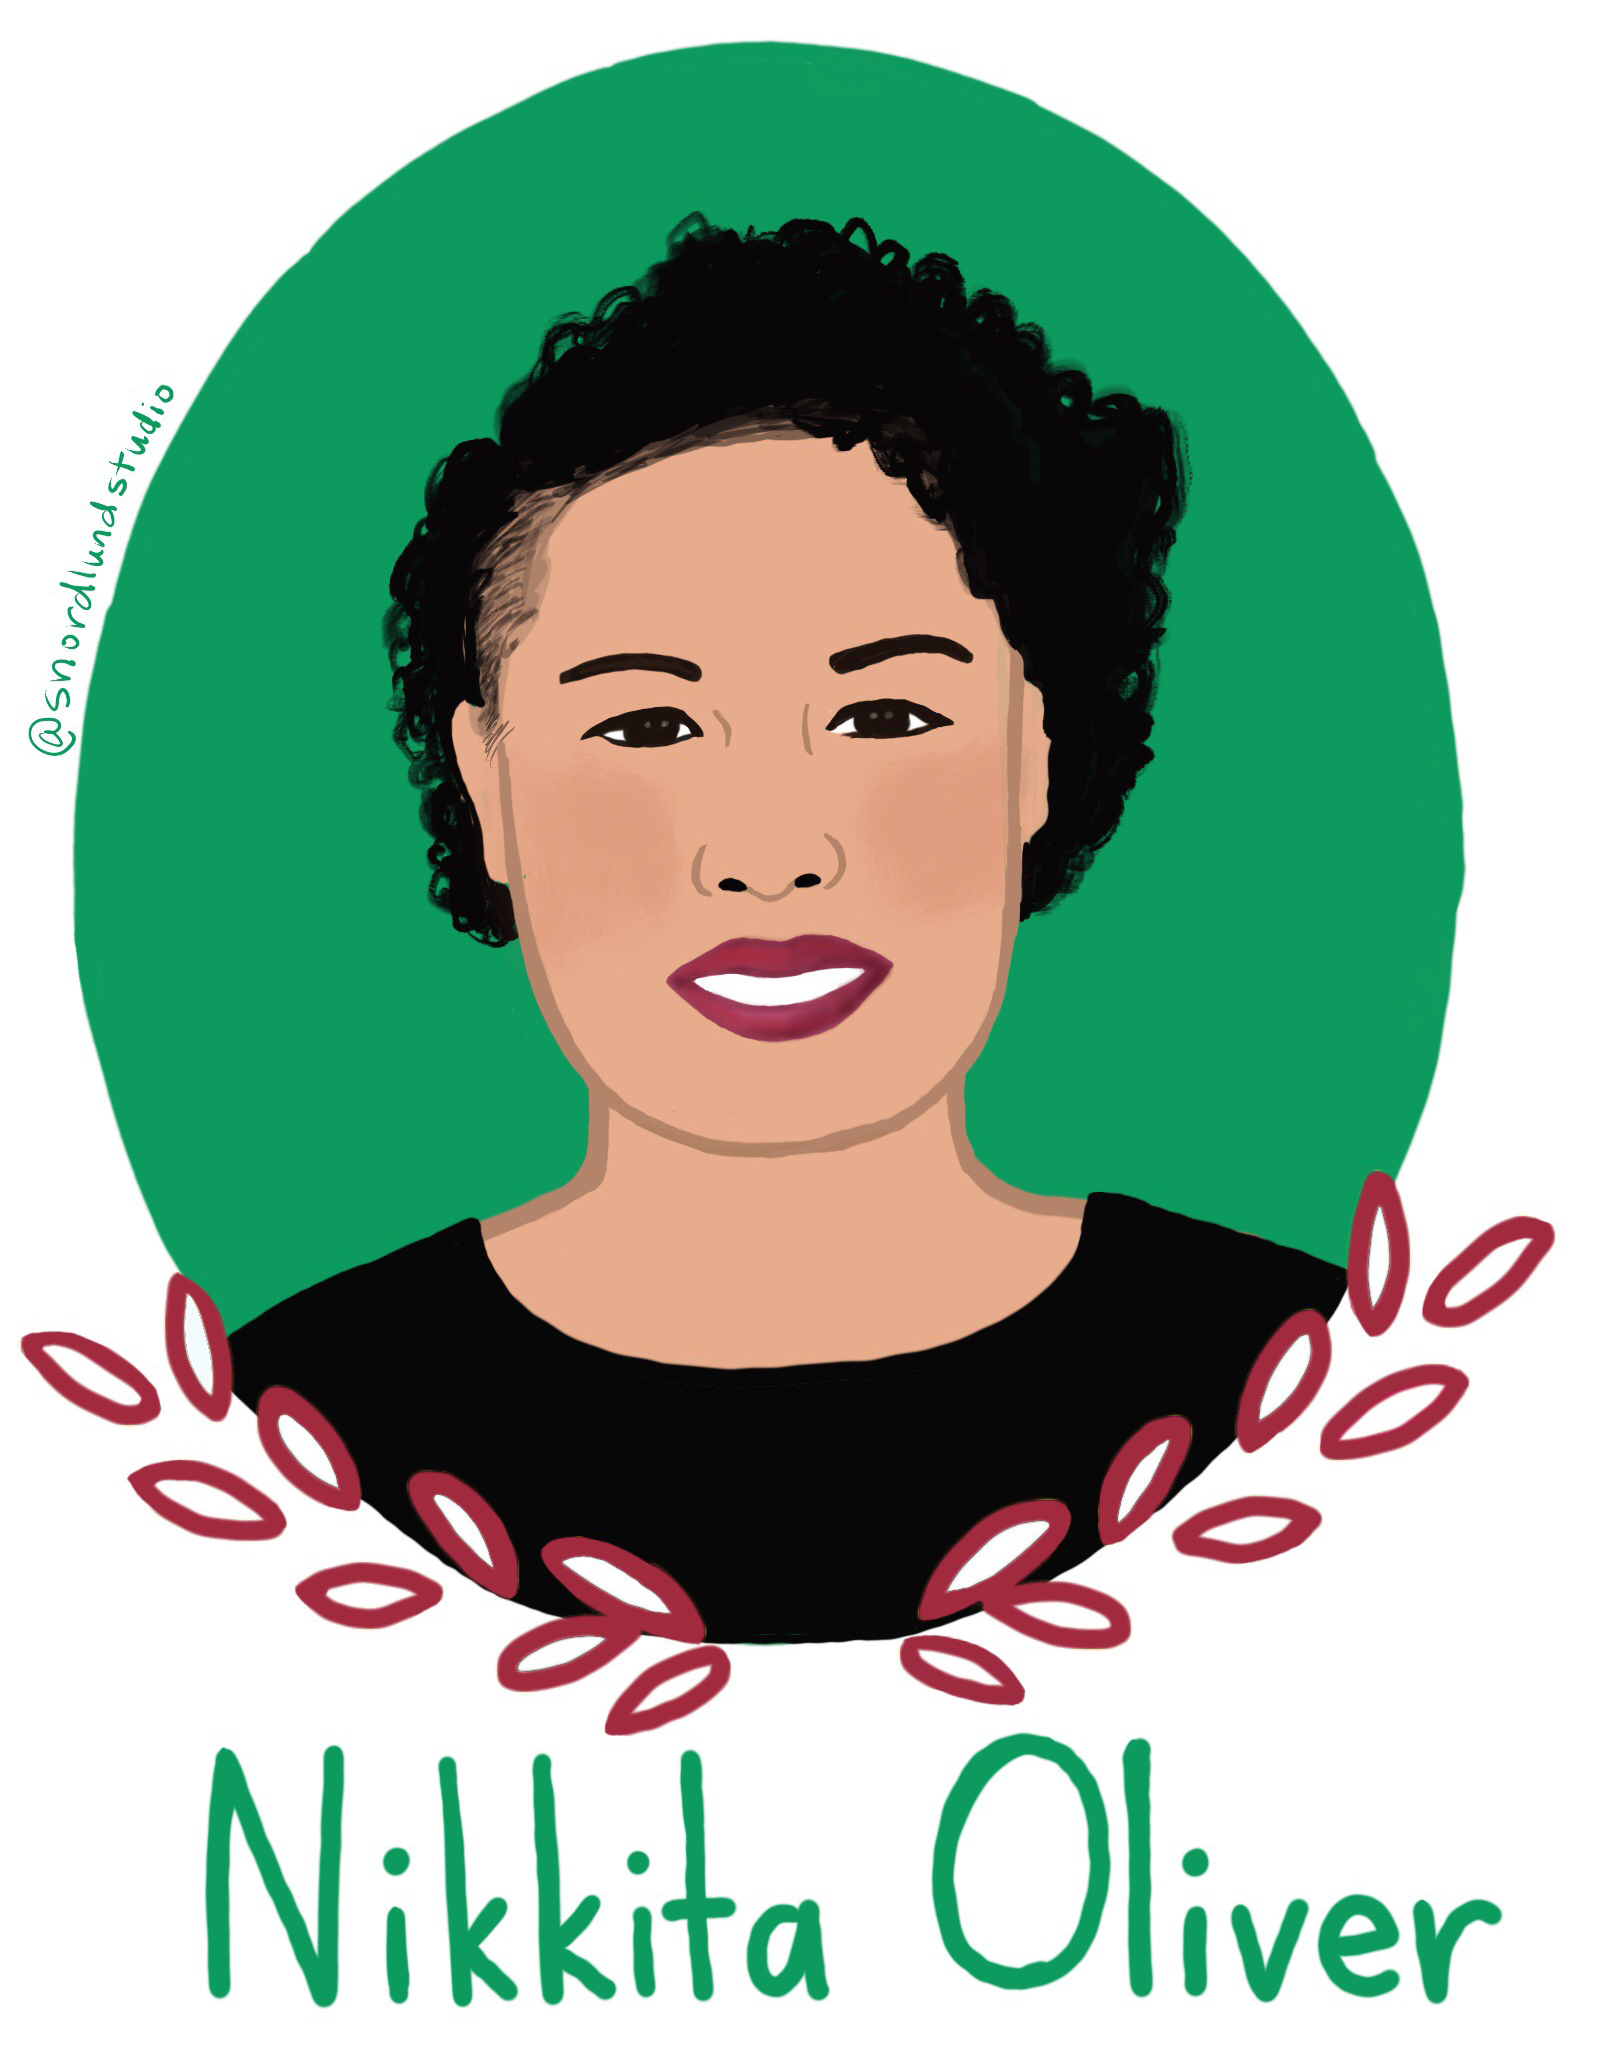 5. Nikkita Oliver - Nikkita Oliver is an activist, poet, teacher, attorney, and former mayoral candidate.